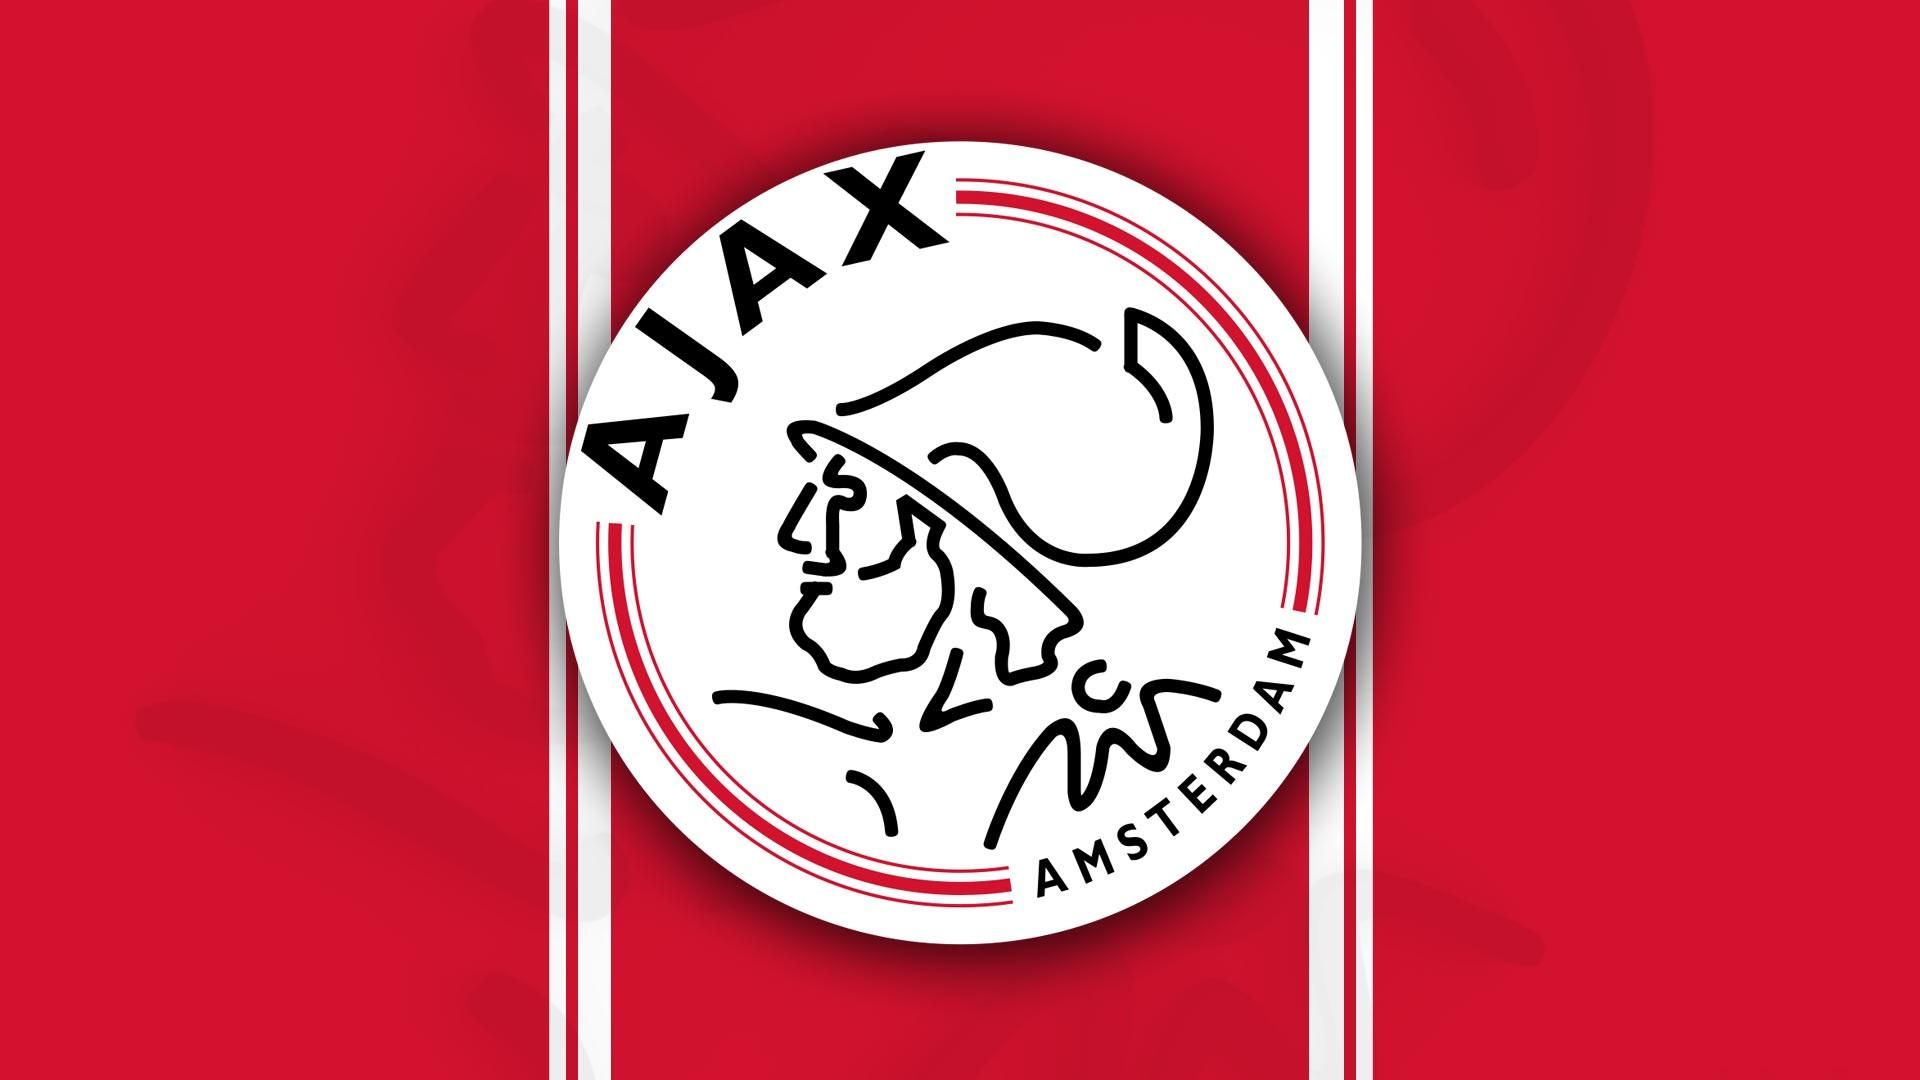 AFC Ajax Amsterdam Wallpapers